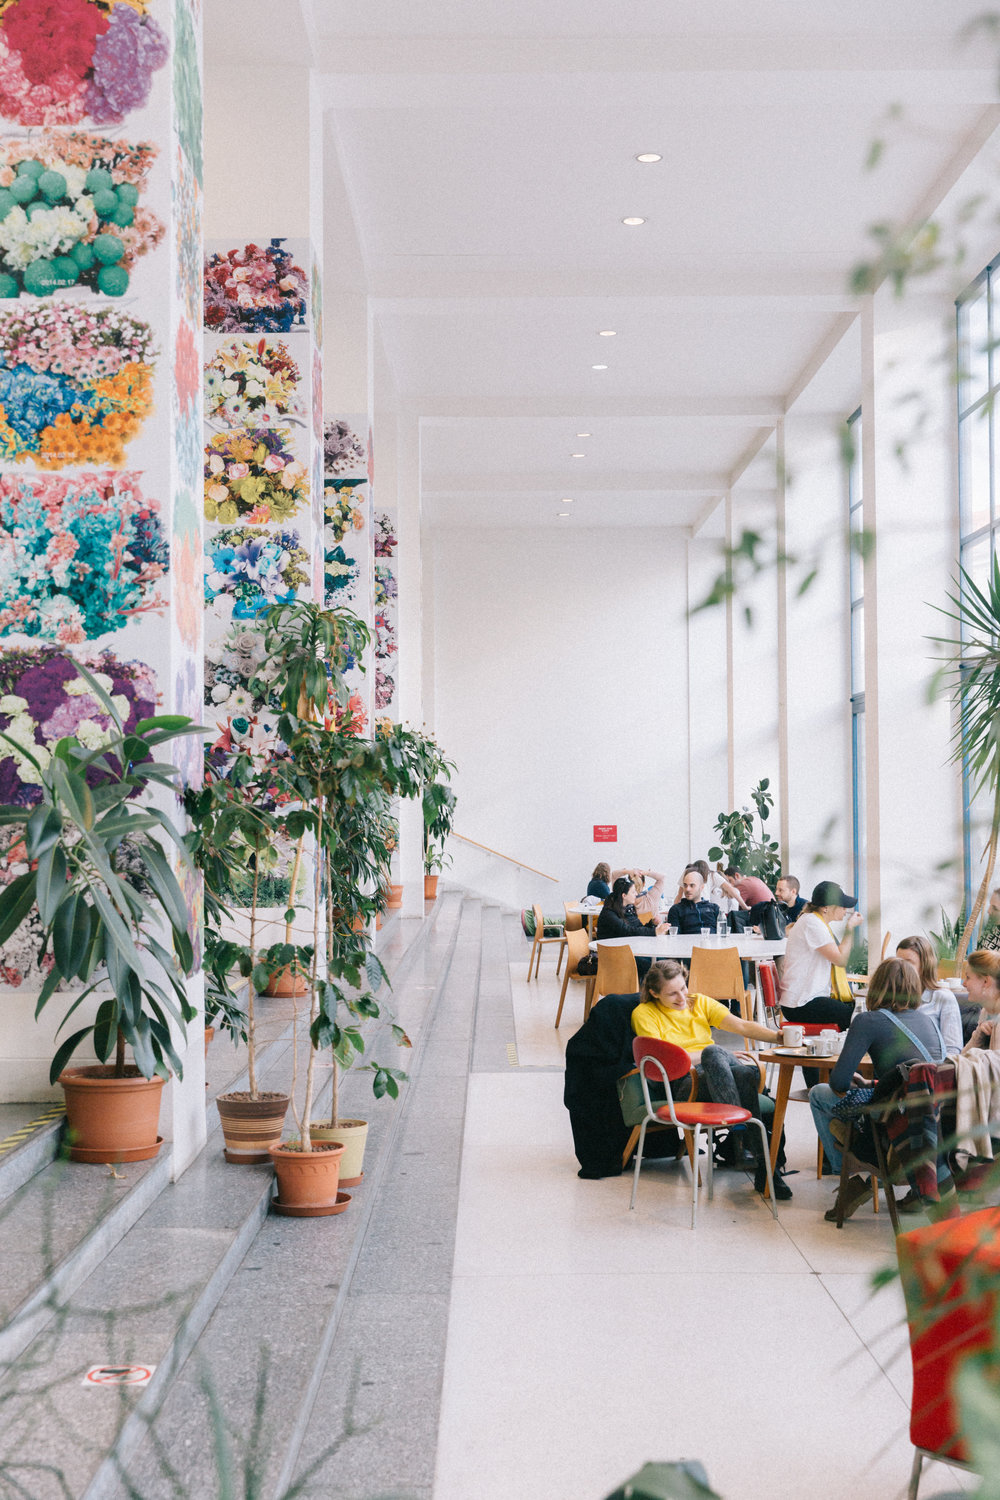 Cafe Jedna - One of my favorite cafes to visit and join in the swirling wave of productivity. Also, its fun because every season the cafe takes on a new exhibition. Everything changes, besides the plants and service which are always superb ;)